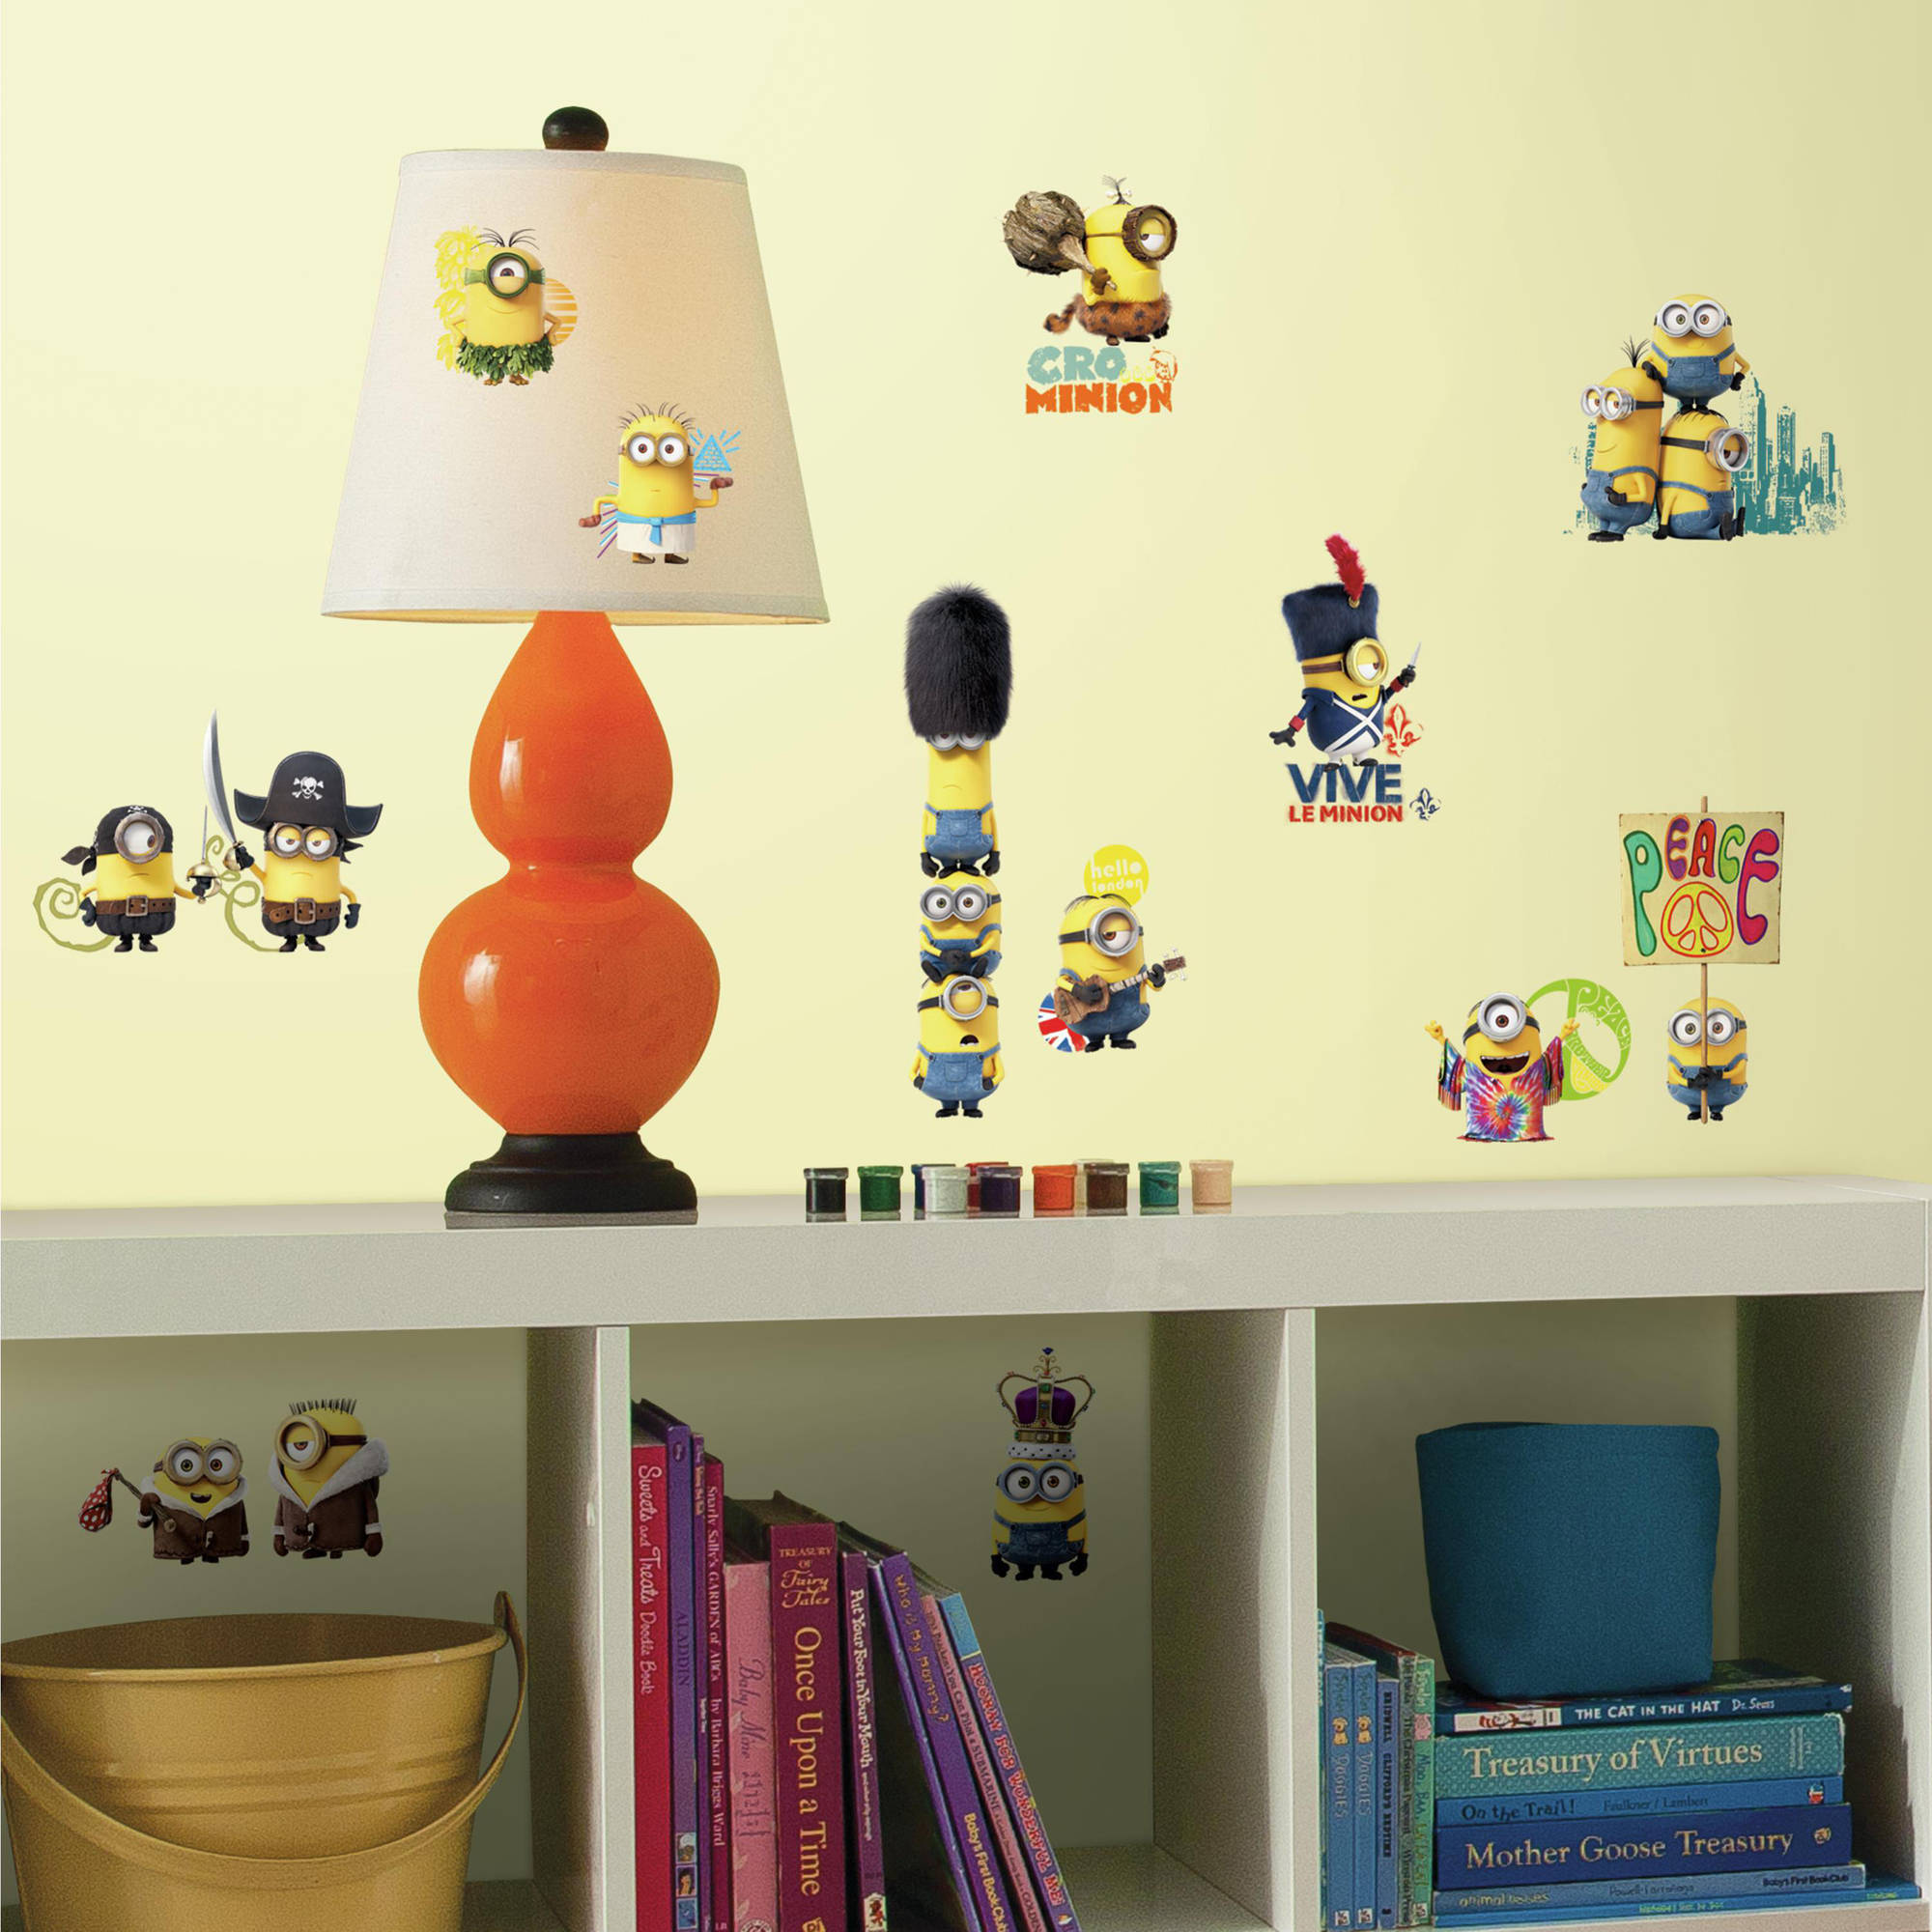 RoomMates Minions The Movie Peel and Stick Wall Decals - Walmart.com